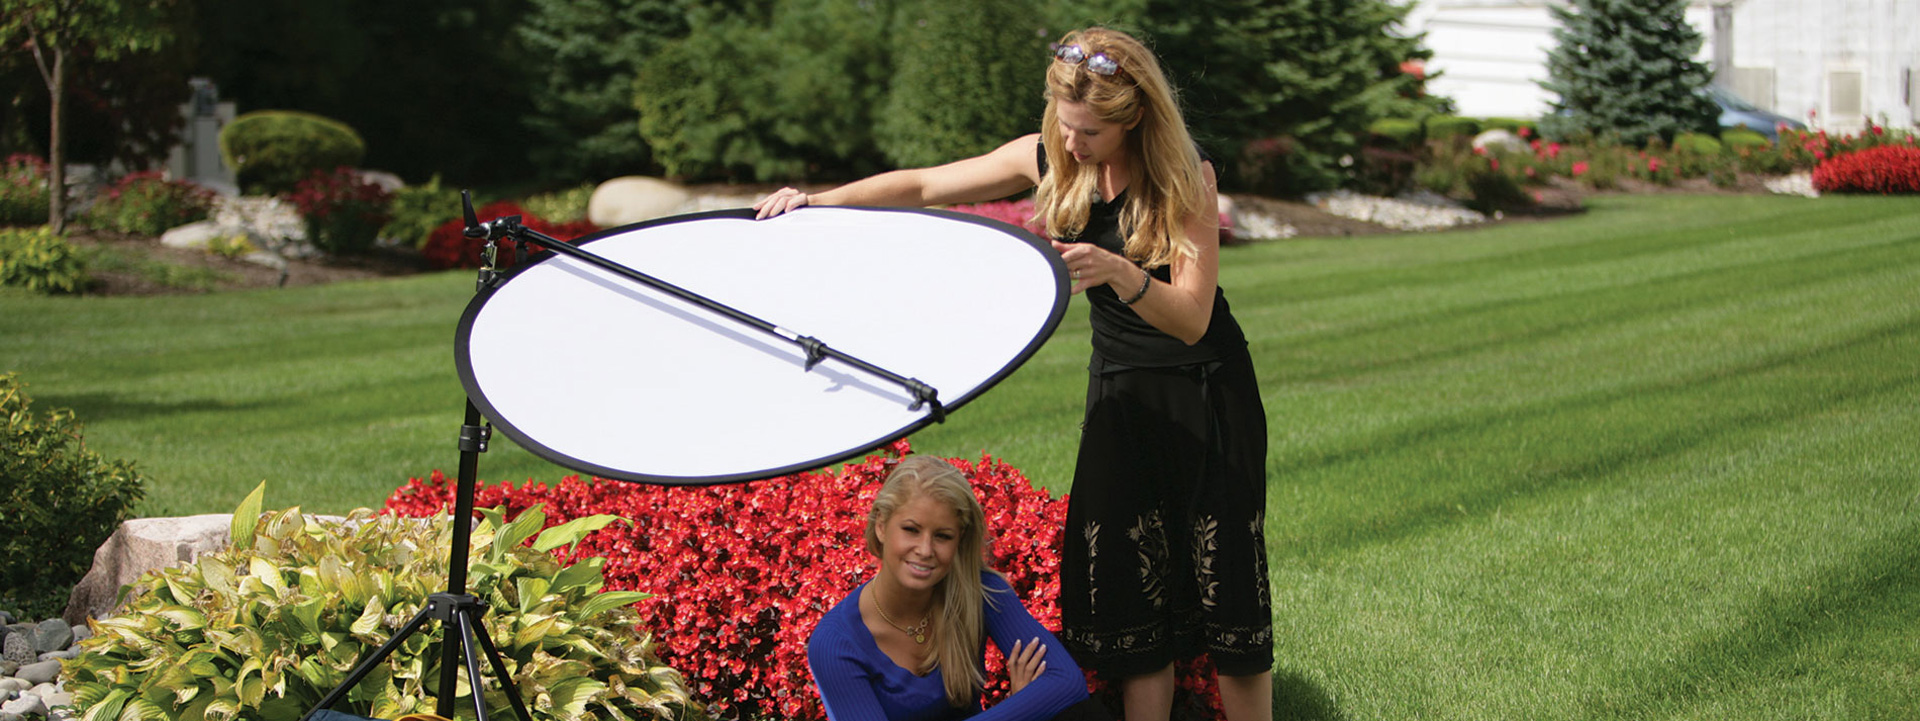 Reflector arm holder in use at a photo shoot